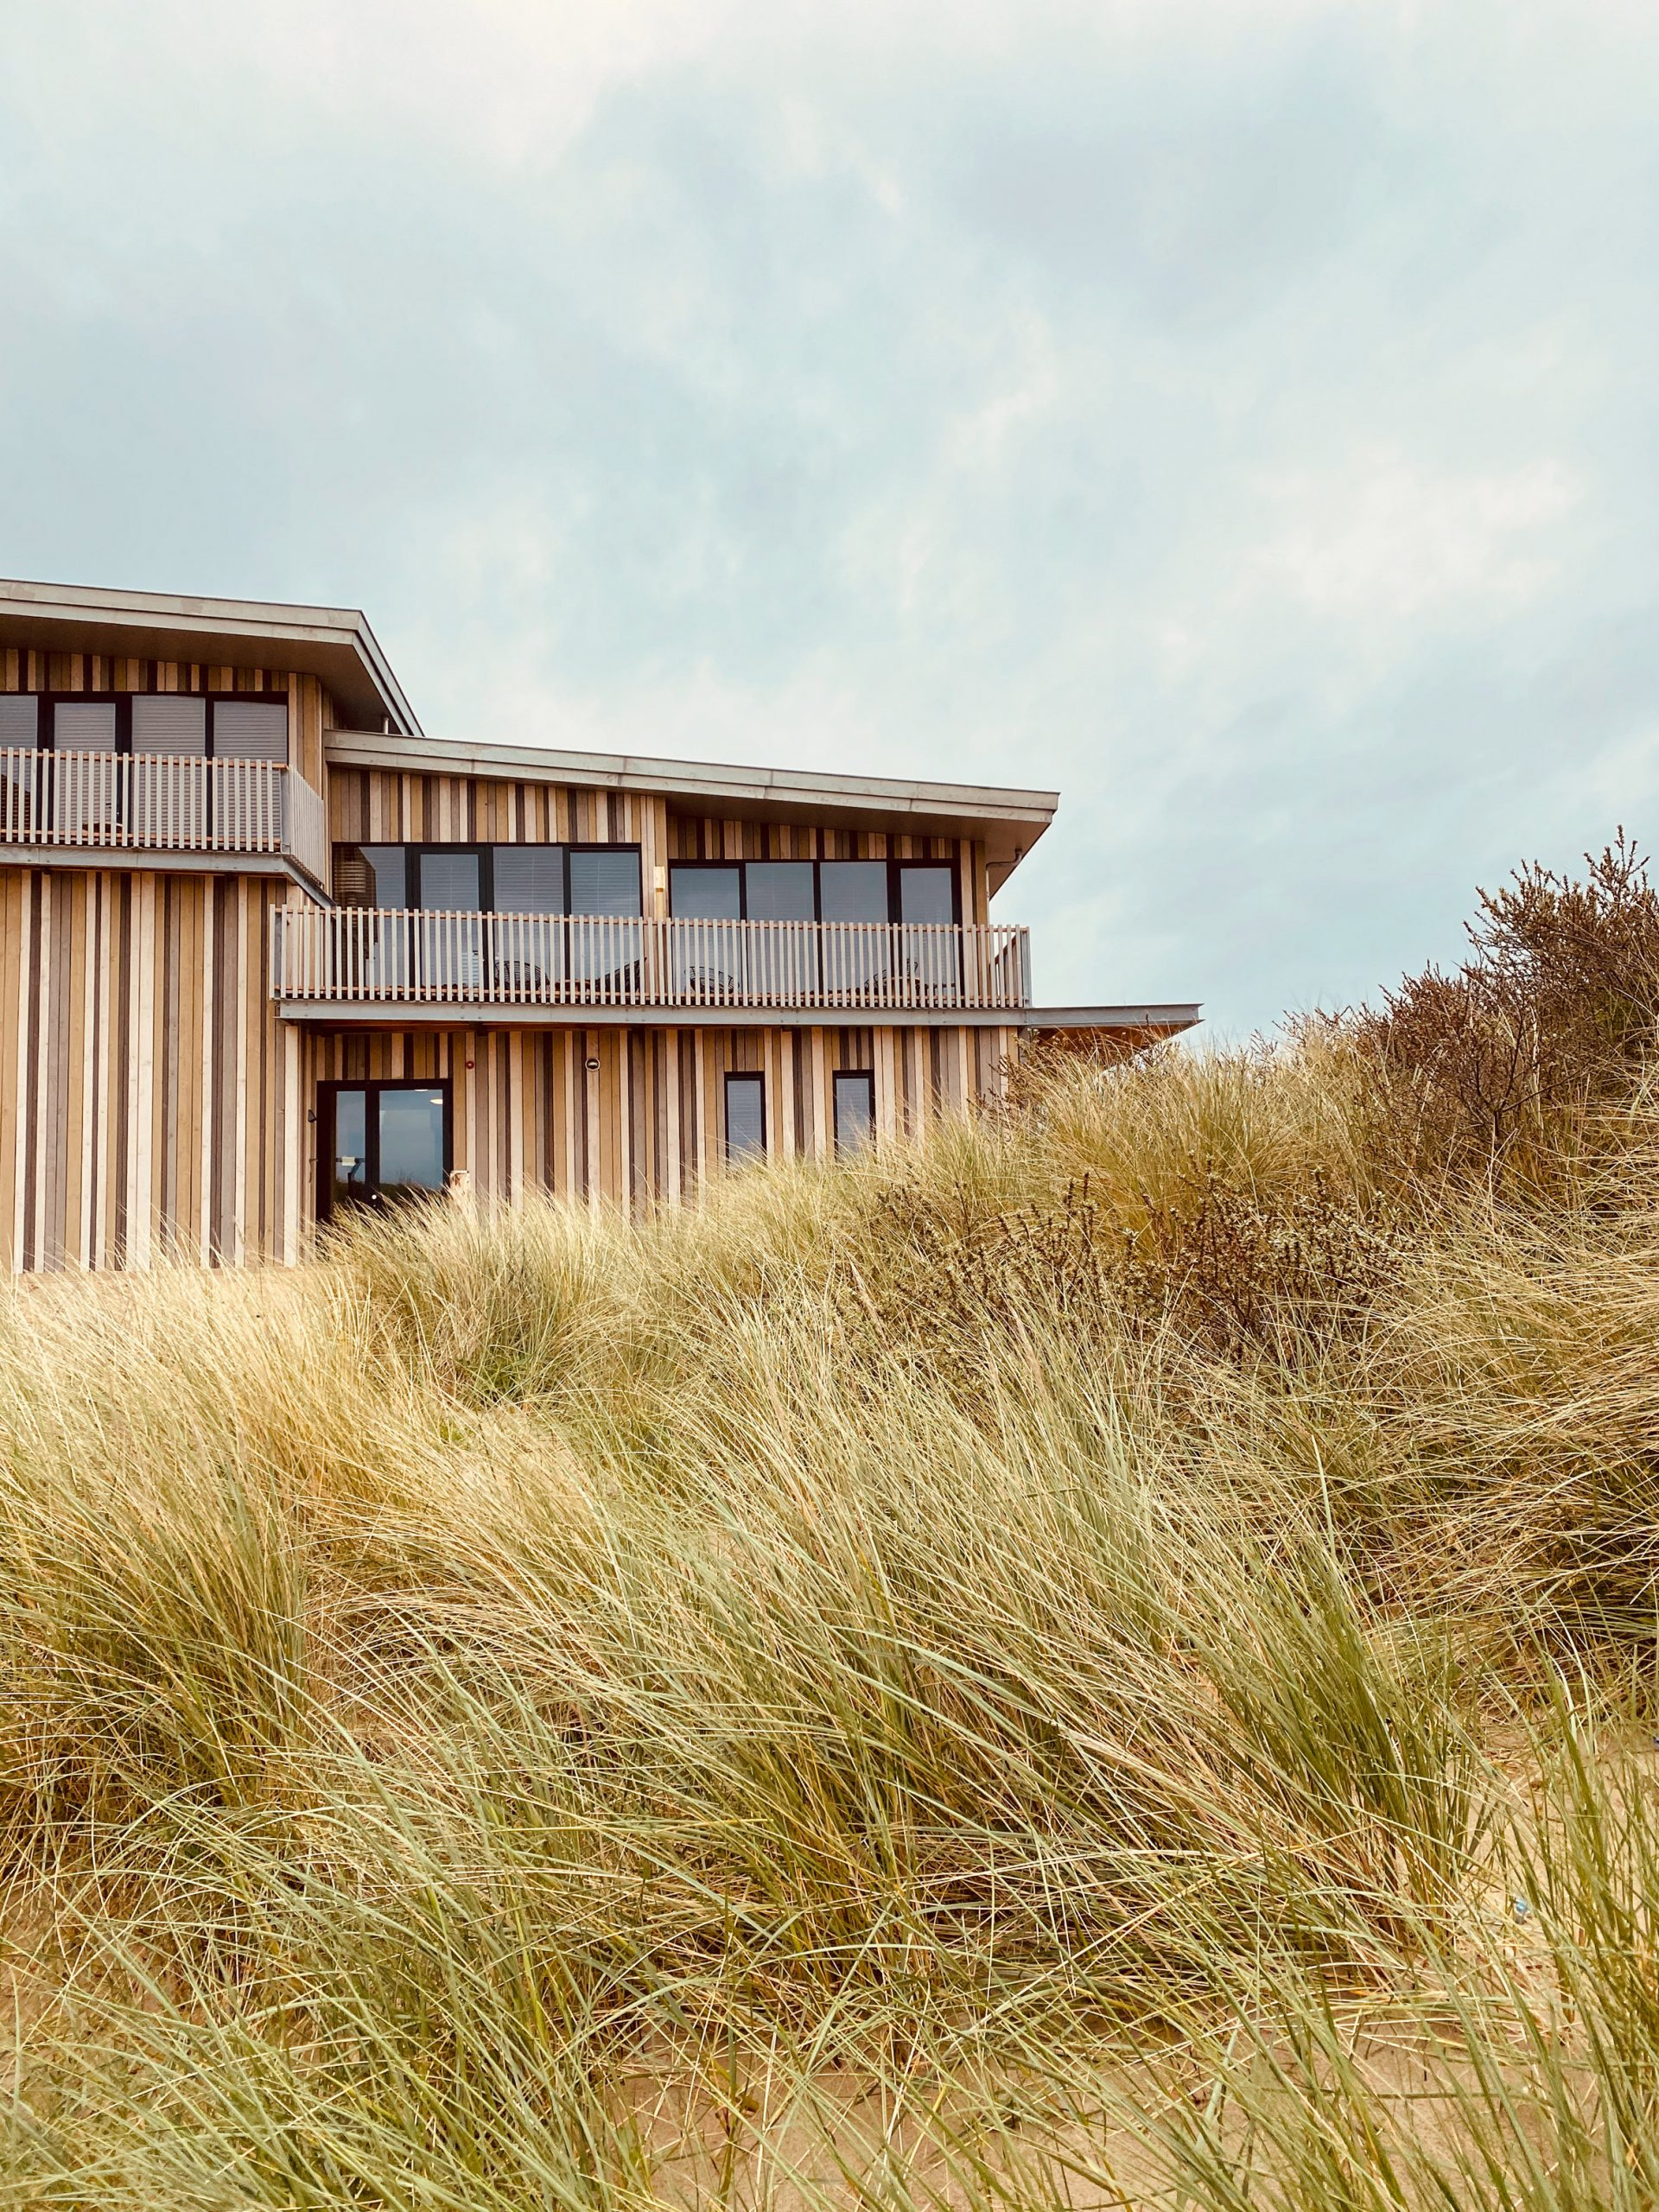 Strandhotel Zoomer in the Netherlands designed by The Other Season and HK Living